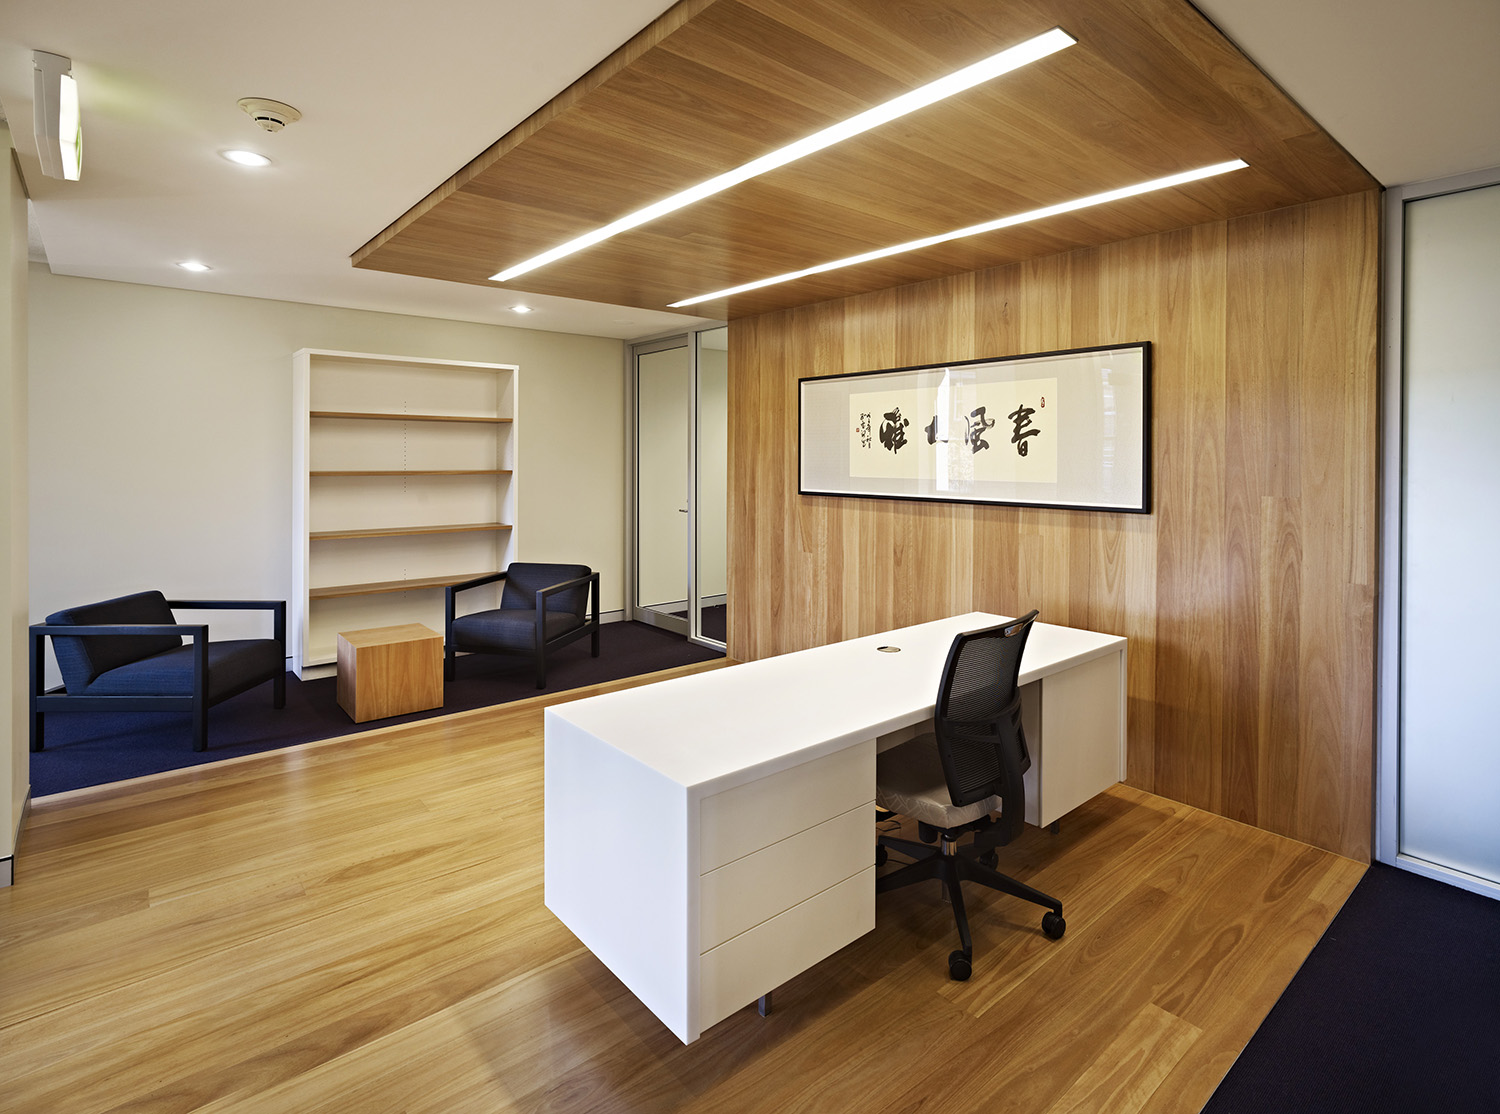 UNSW Confucius Institute WorkplaceReception Desk and Foyer Interior Design – Gardner Wetherill GW 2